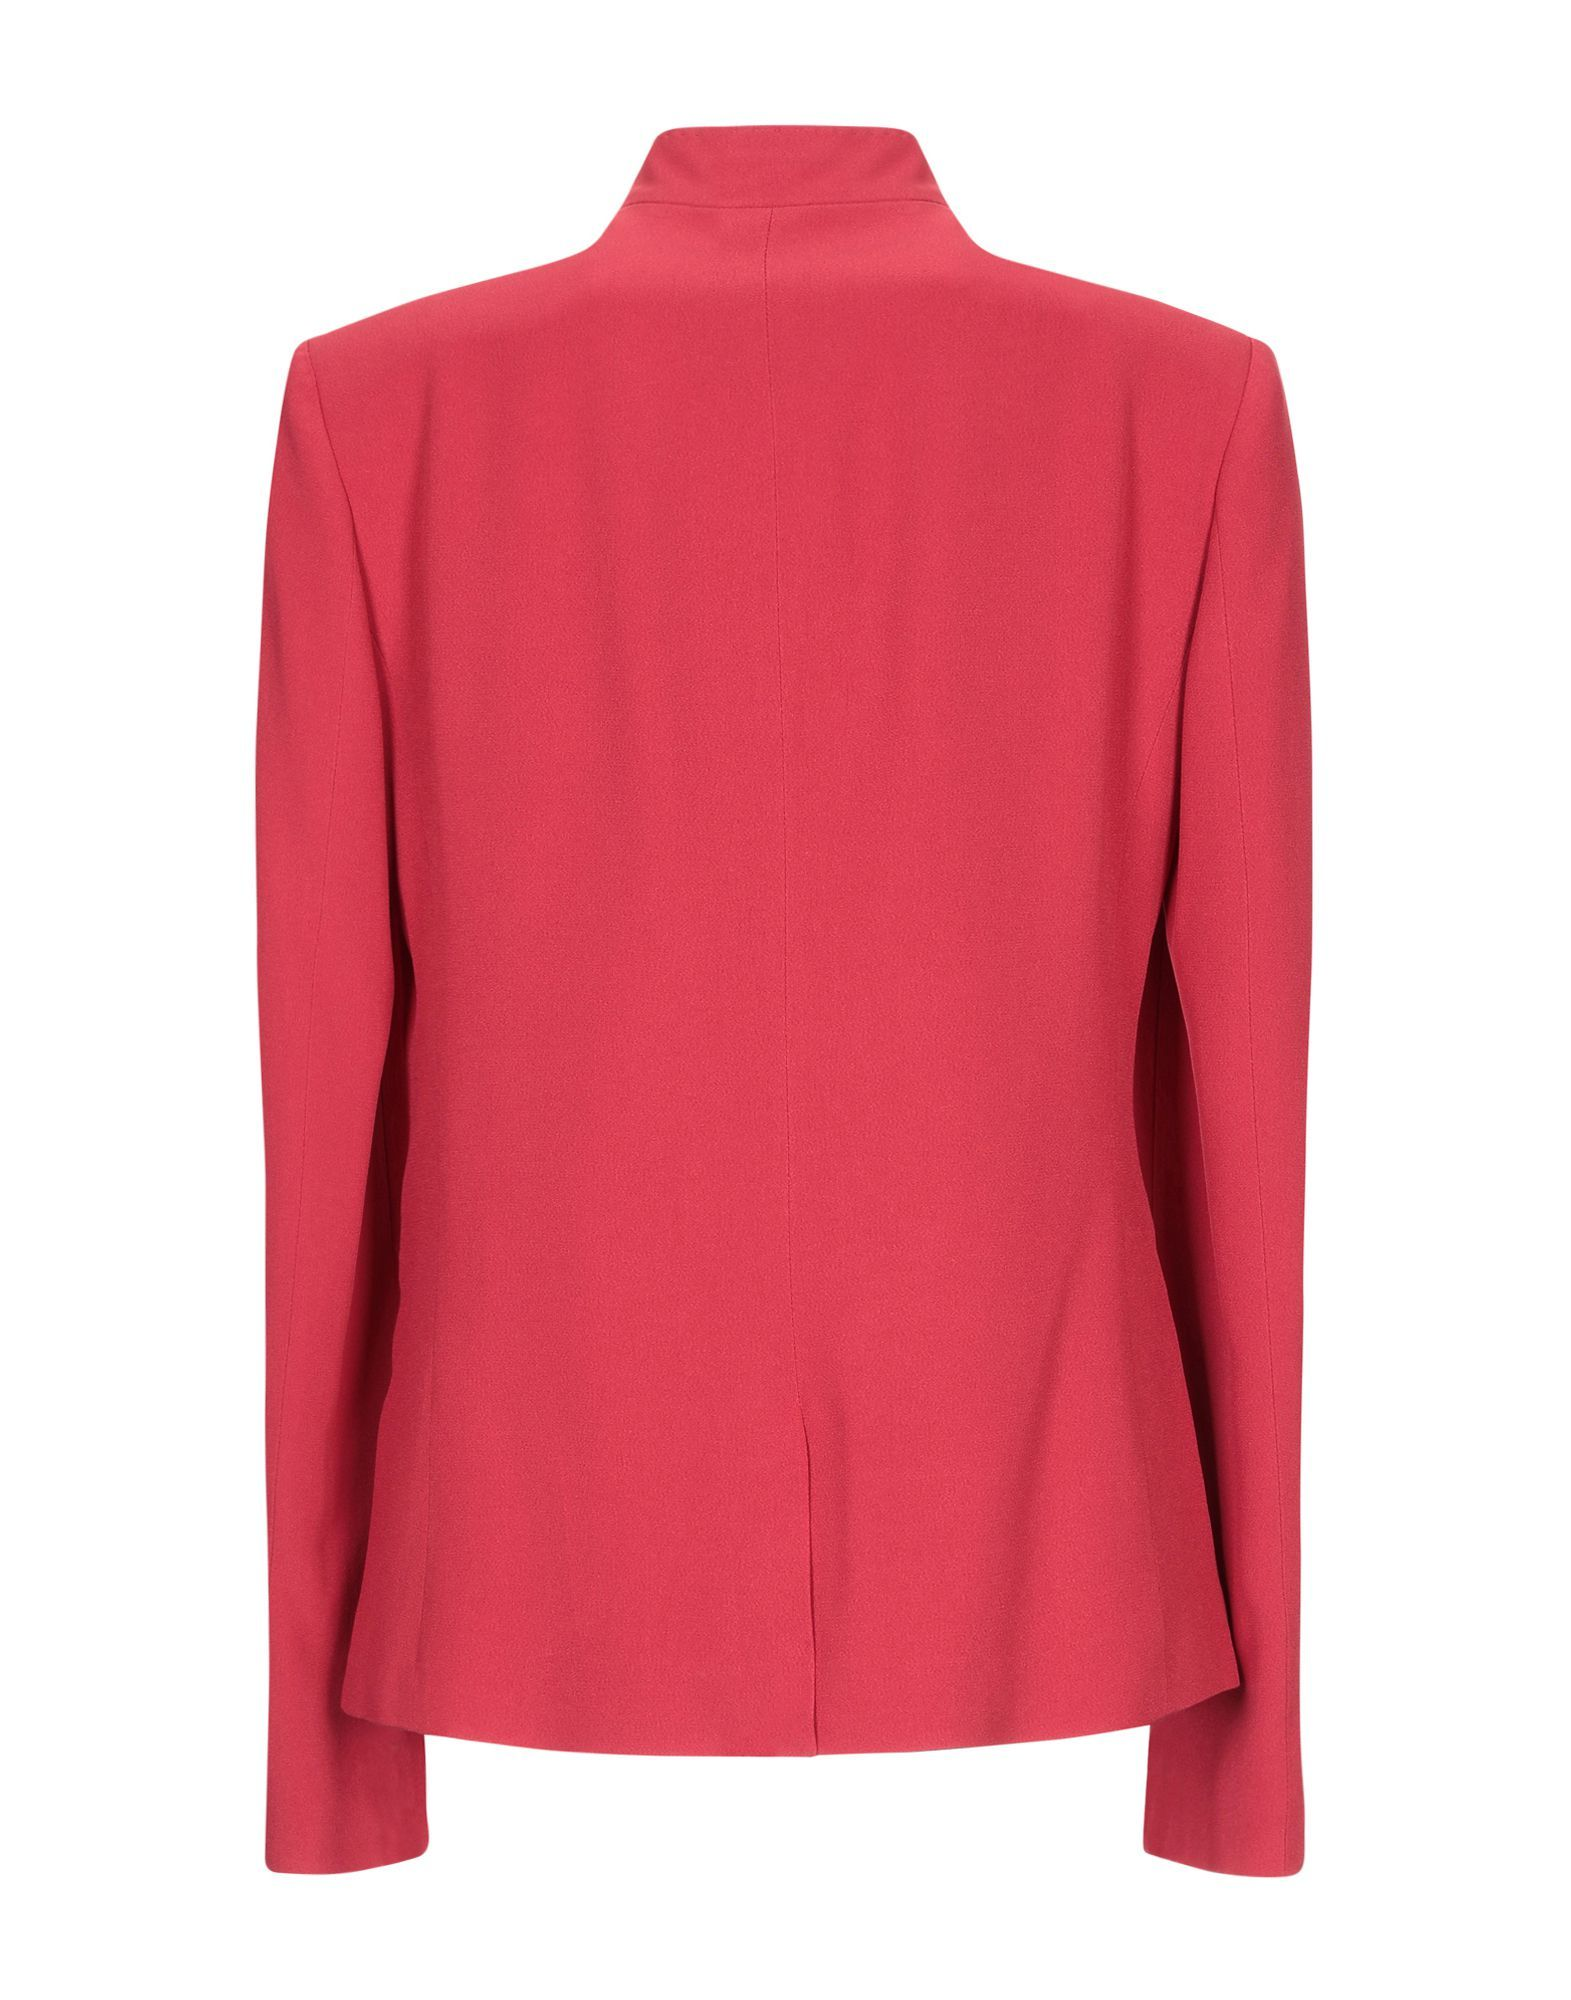 SUITS AND JACKETS Woman Trussardi Brick red Acetate